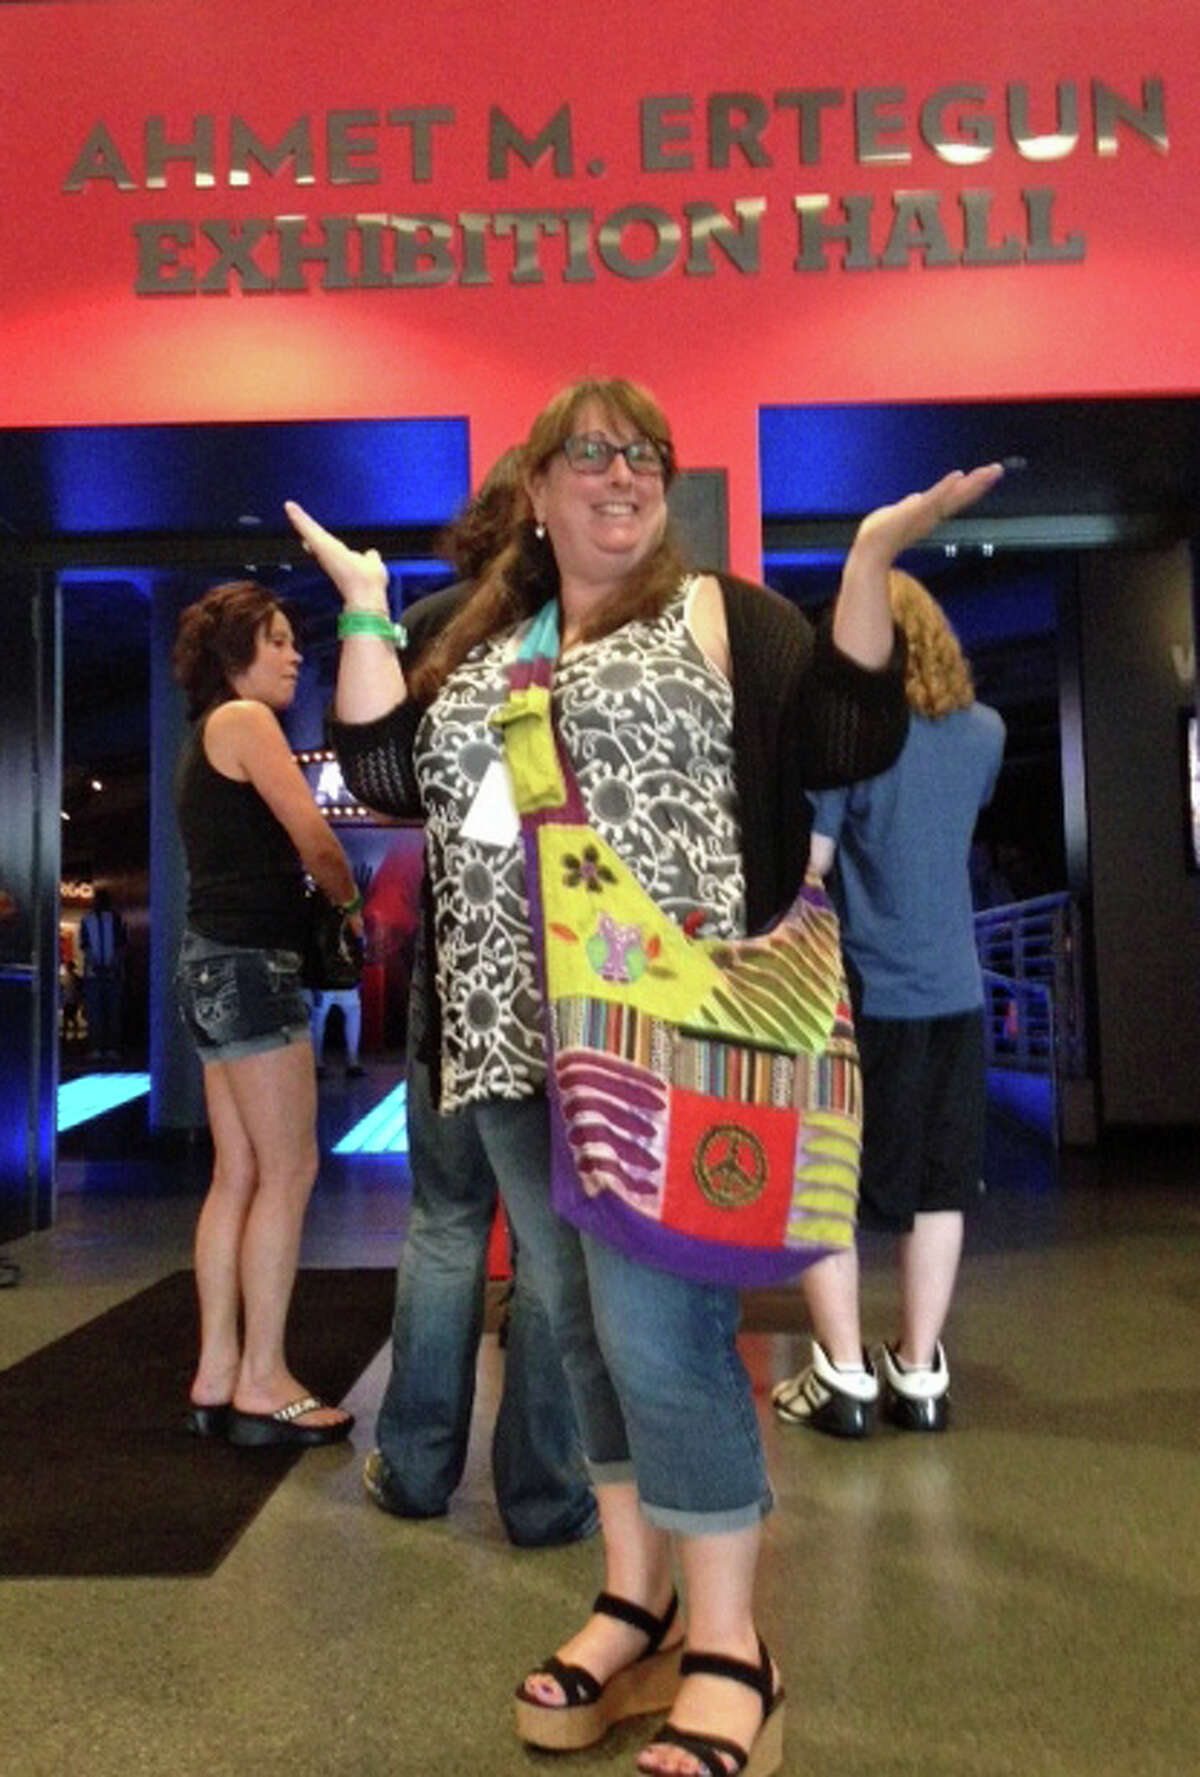 Hamilton Avenue literacy specialist Lettitia Long in an exhibit at the Rock & Roll Hall of Fame earlier this week.